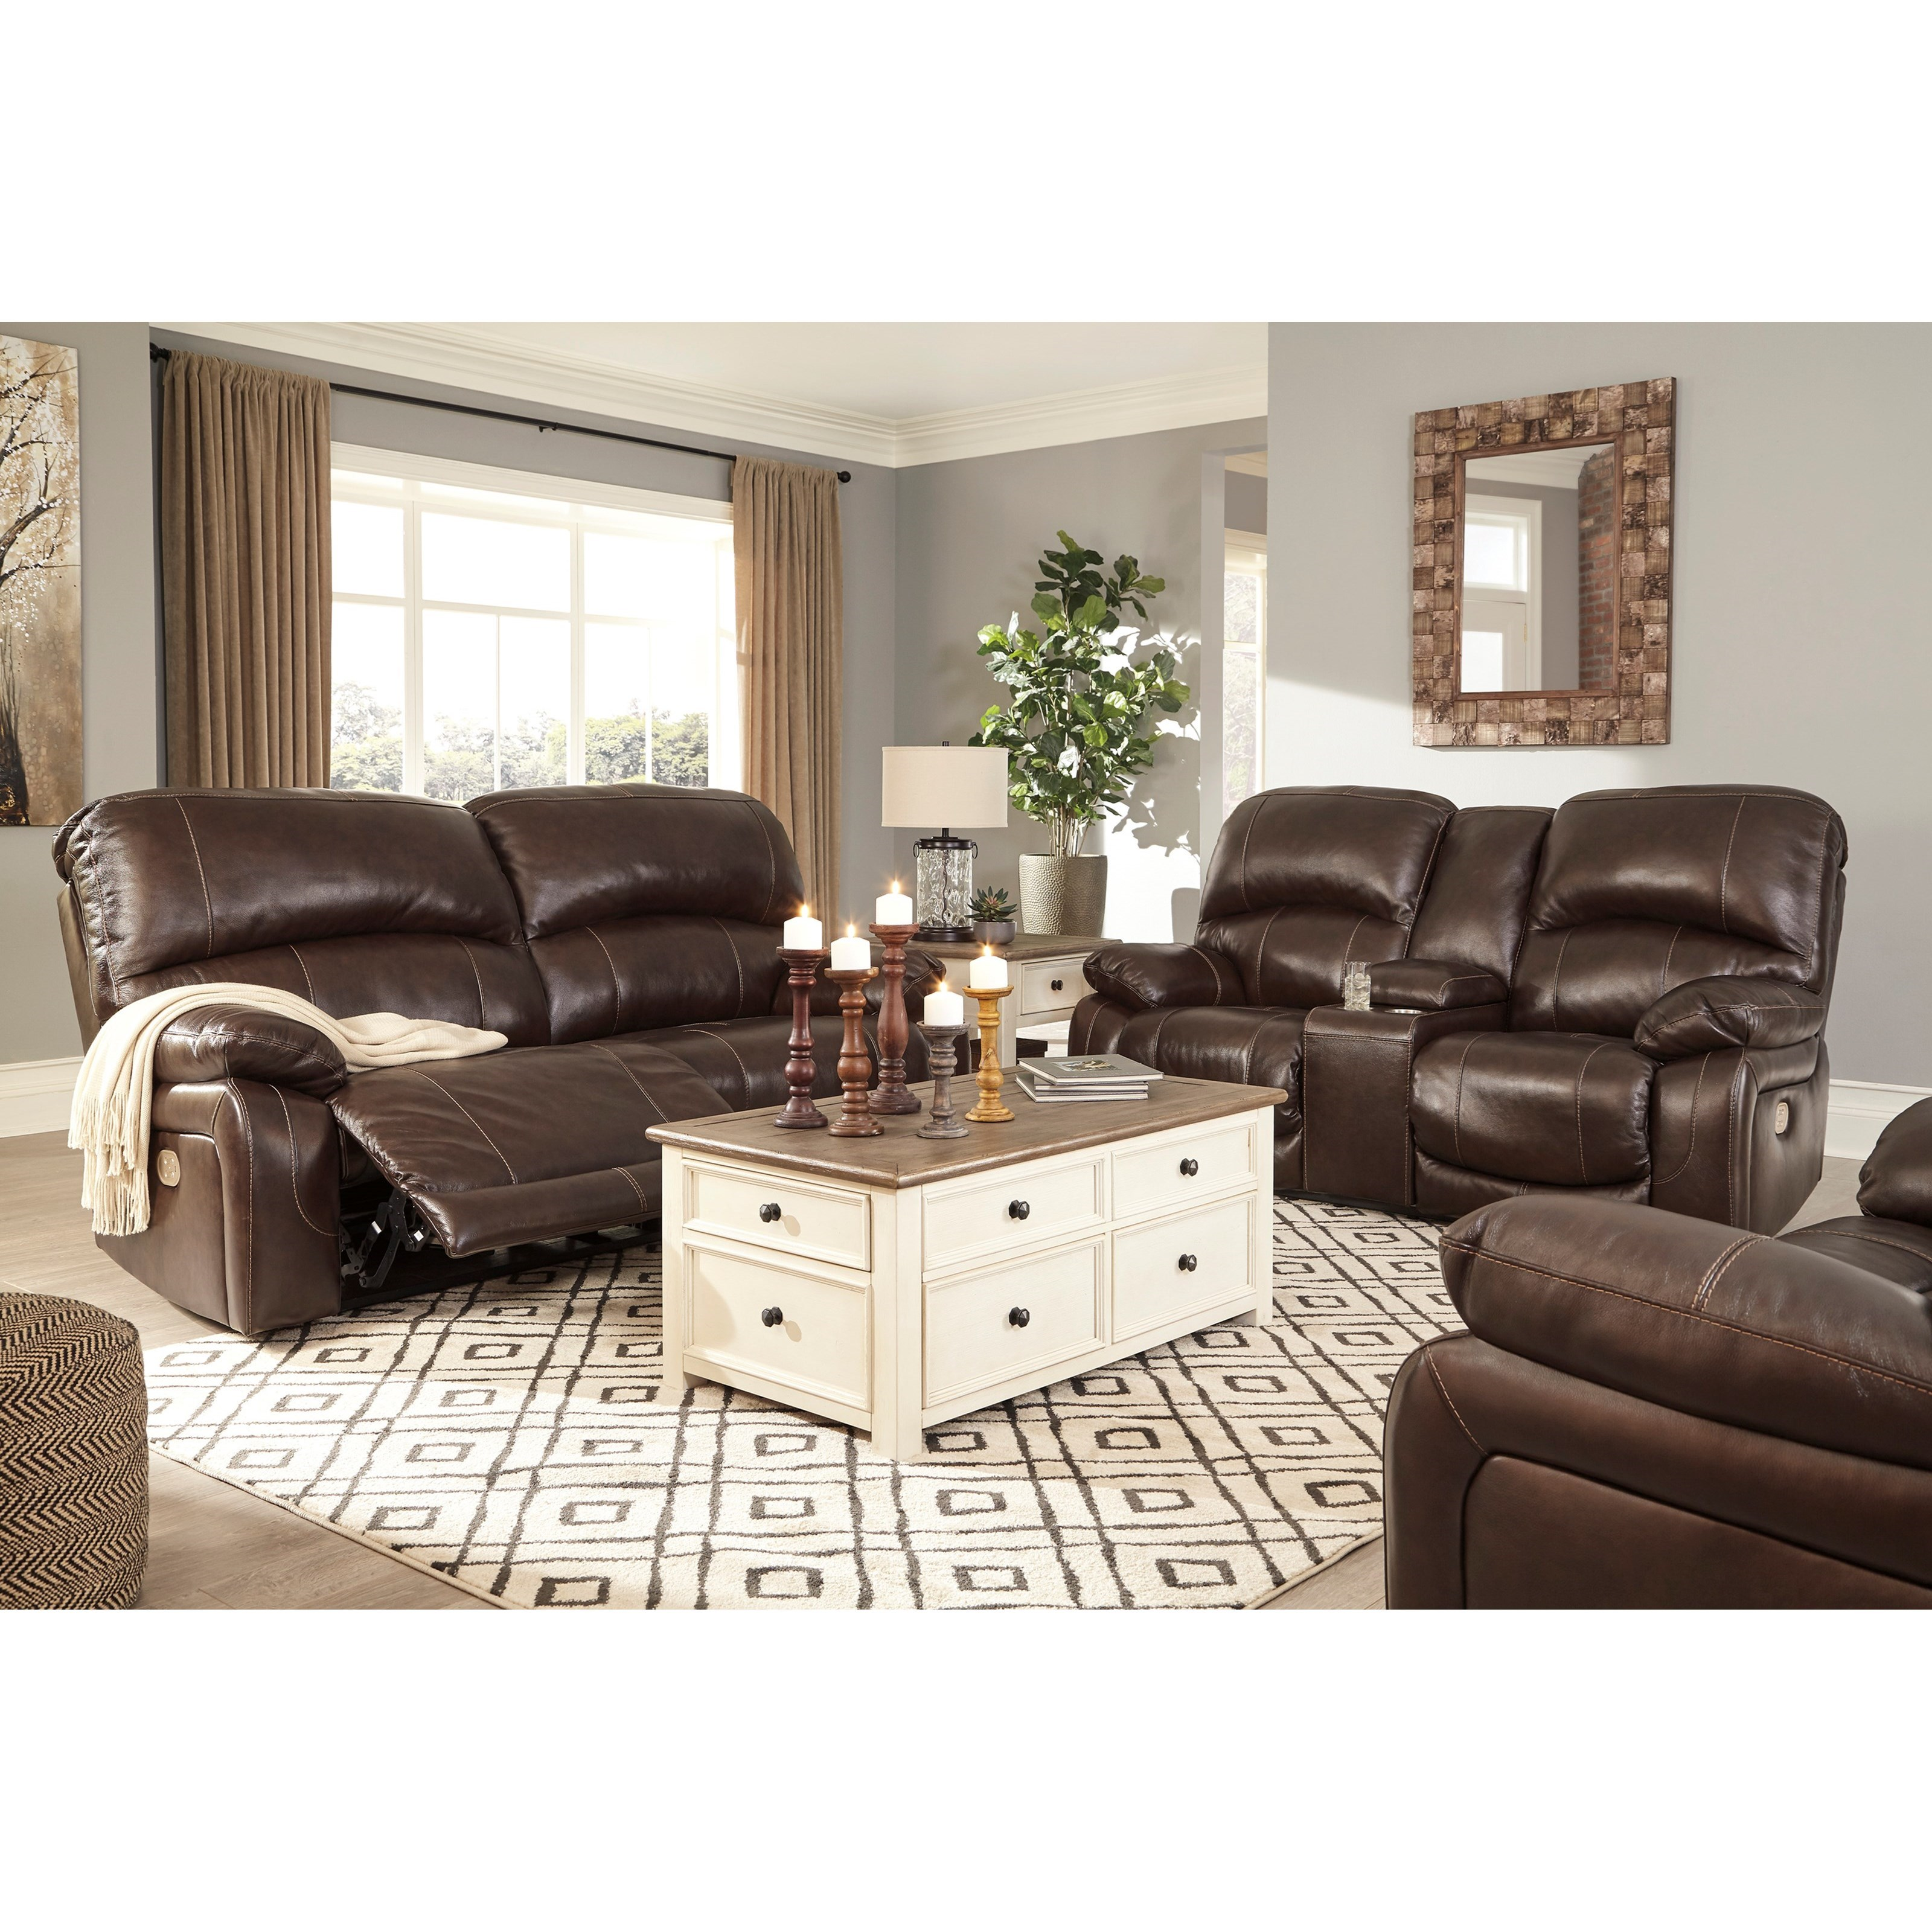 Hallstrung Power Reclining Living Room Group by Signature Design by Ashley at Value City Furniture